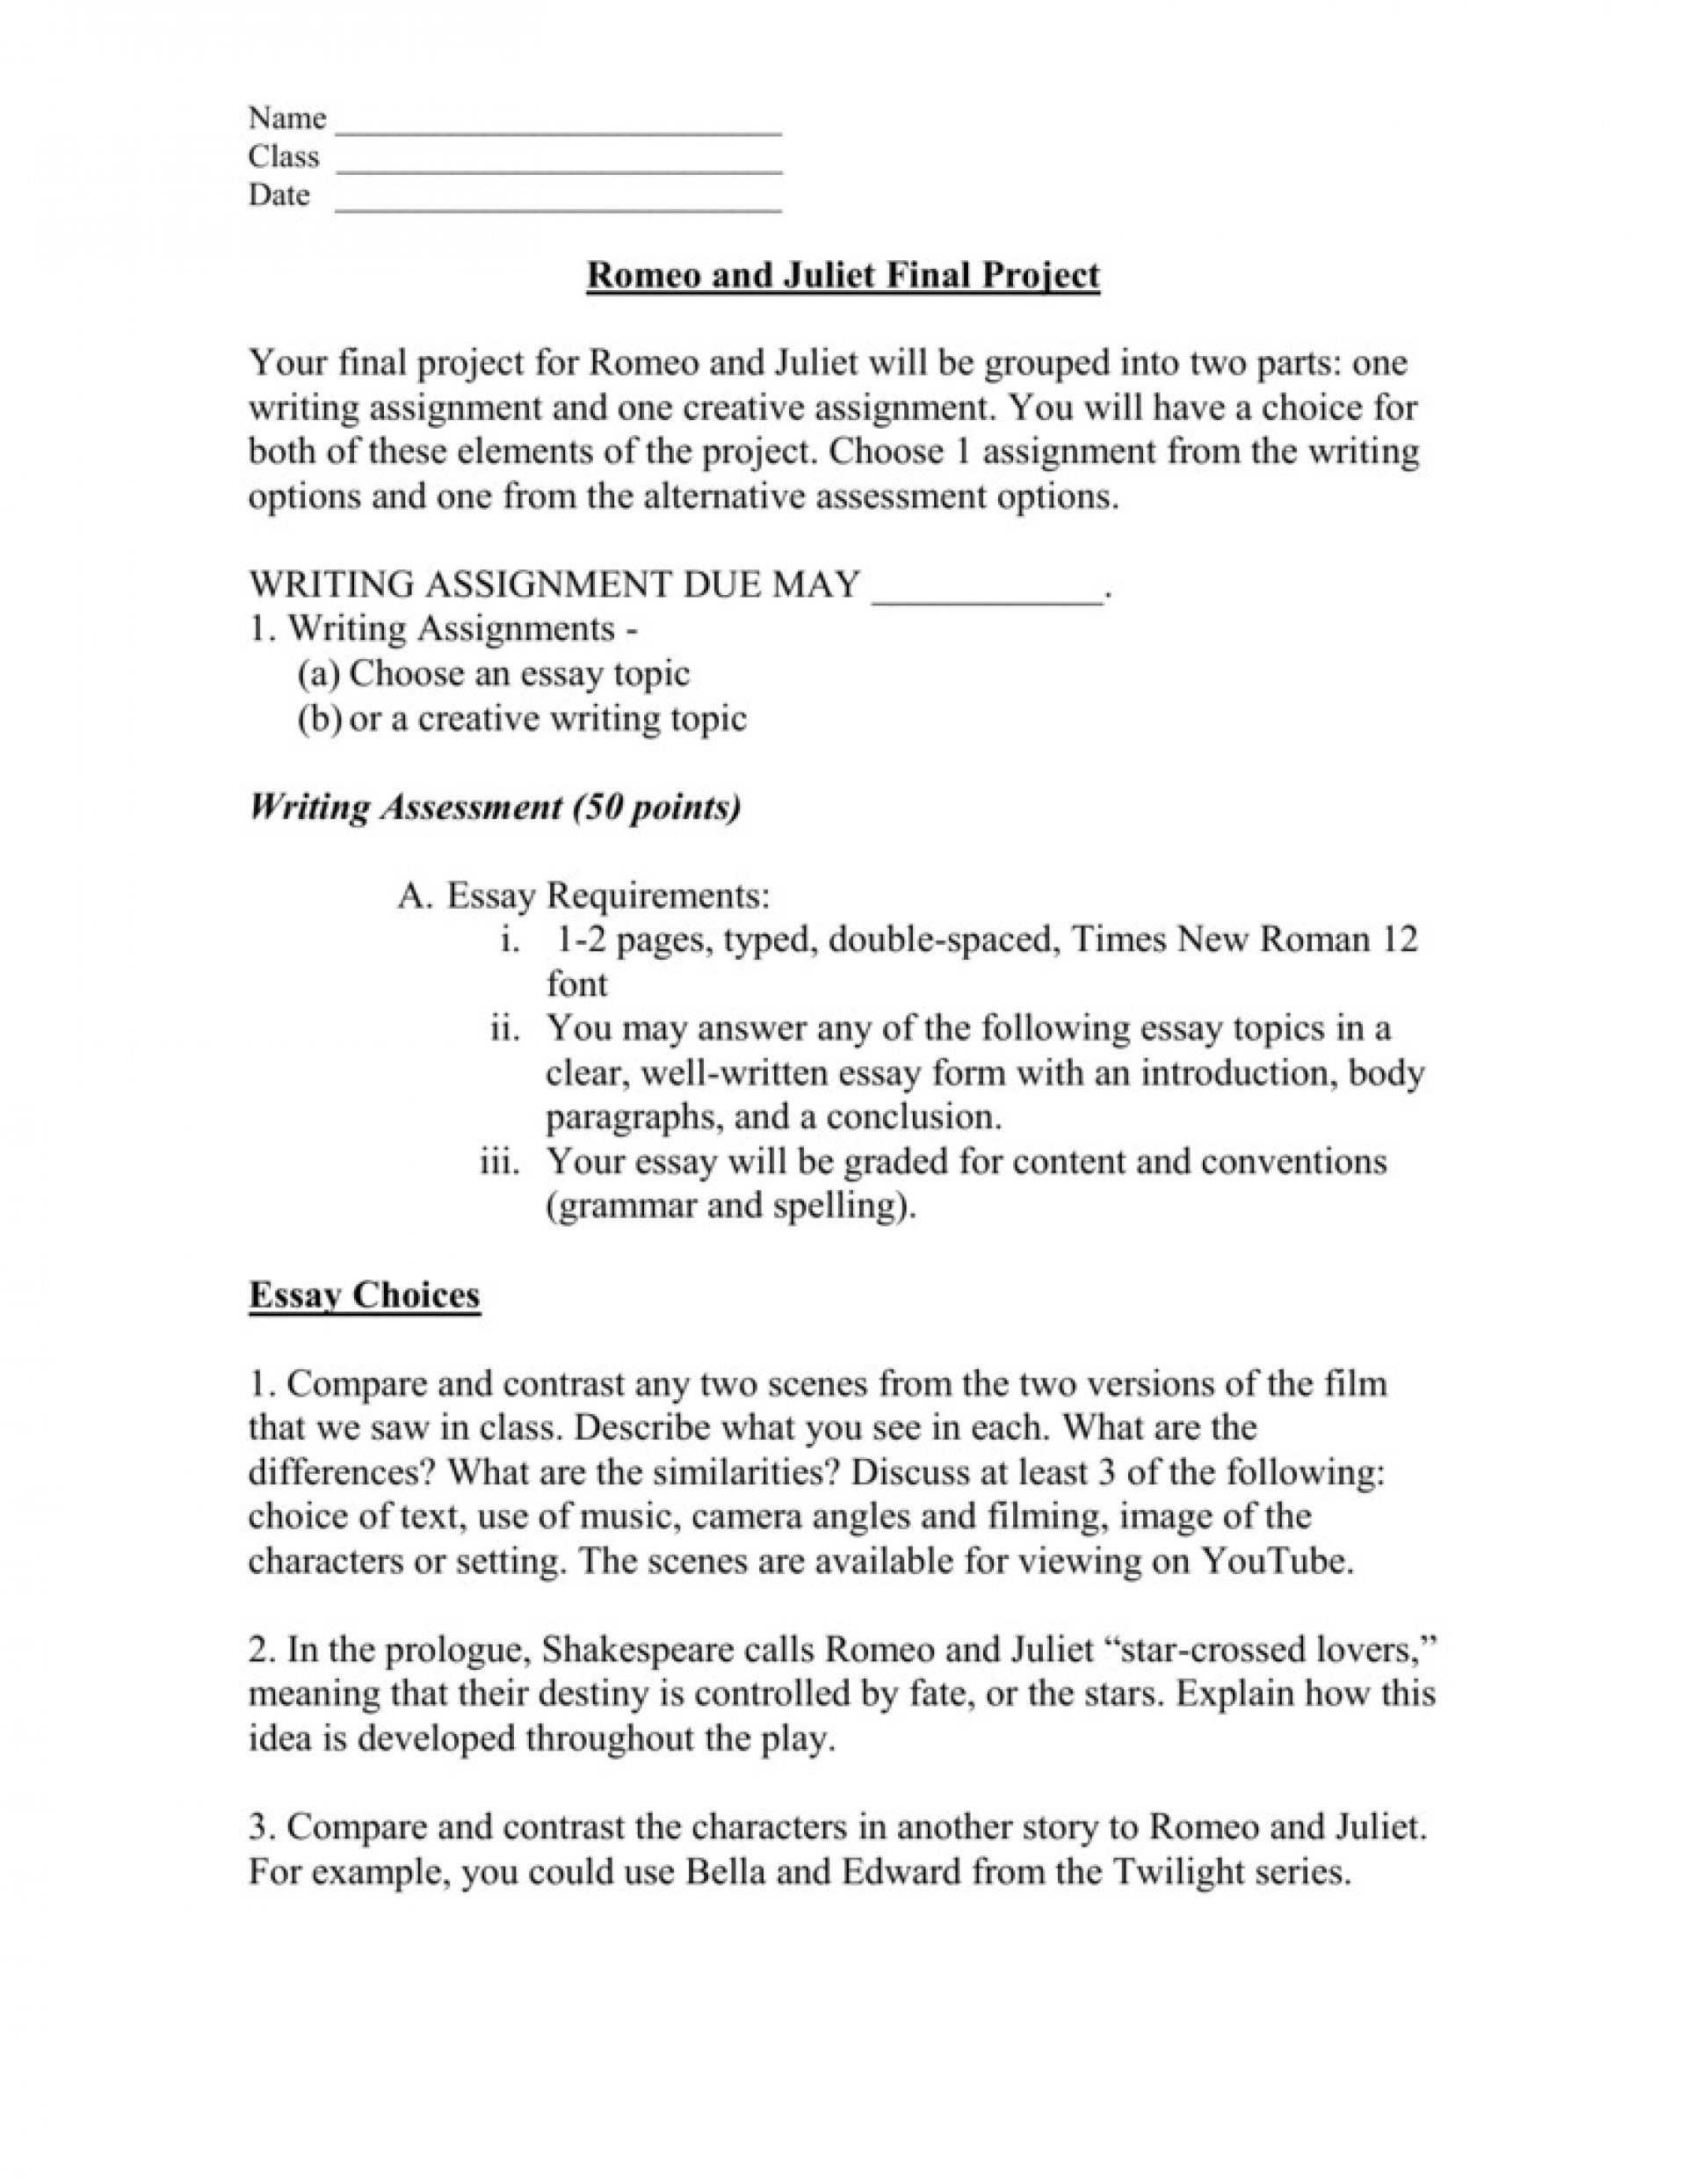 Private High School Admission Essay Examples  Computer Science Essay Topics also Yellow Wallpaper Analysis Essay  Creative Project Ideas For Romeo And Juliet Luxury  Best English Essays